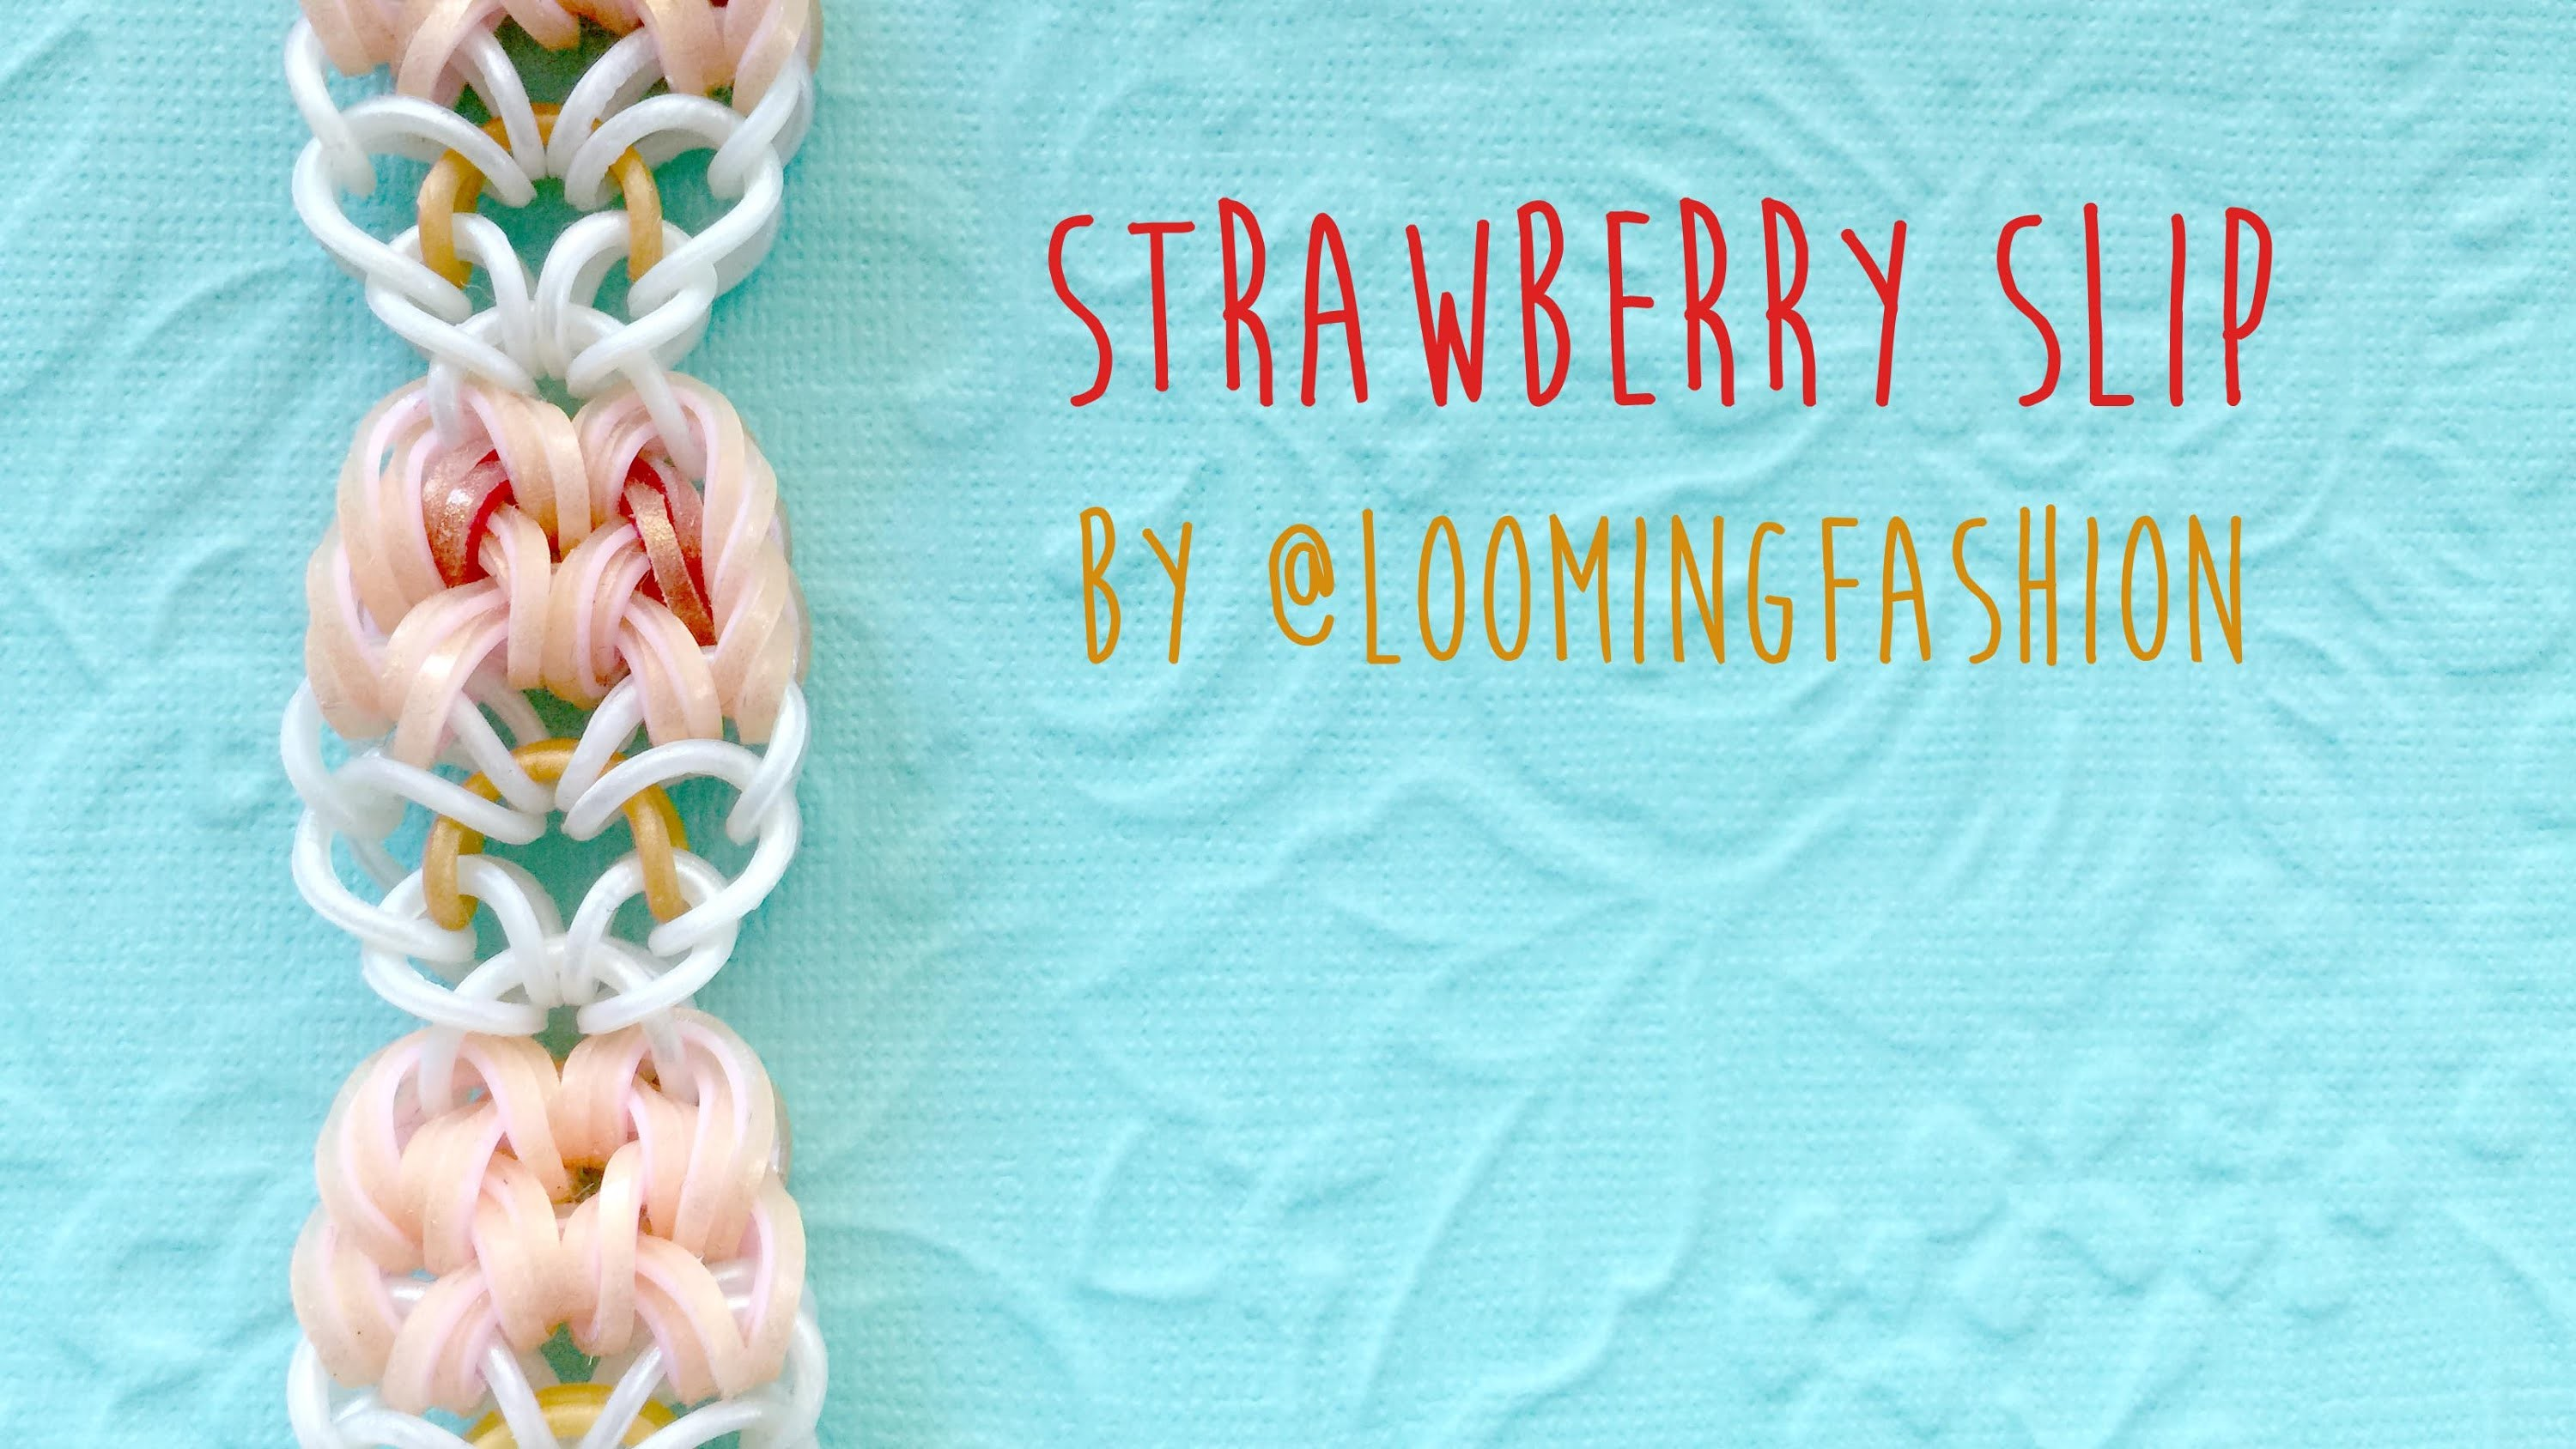 Rainbow Loom Bands Strawberry Slip by @LoomingFashion